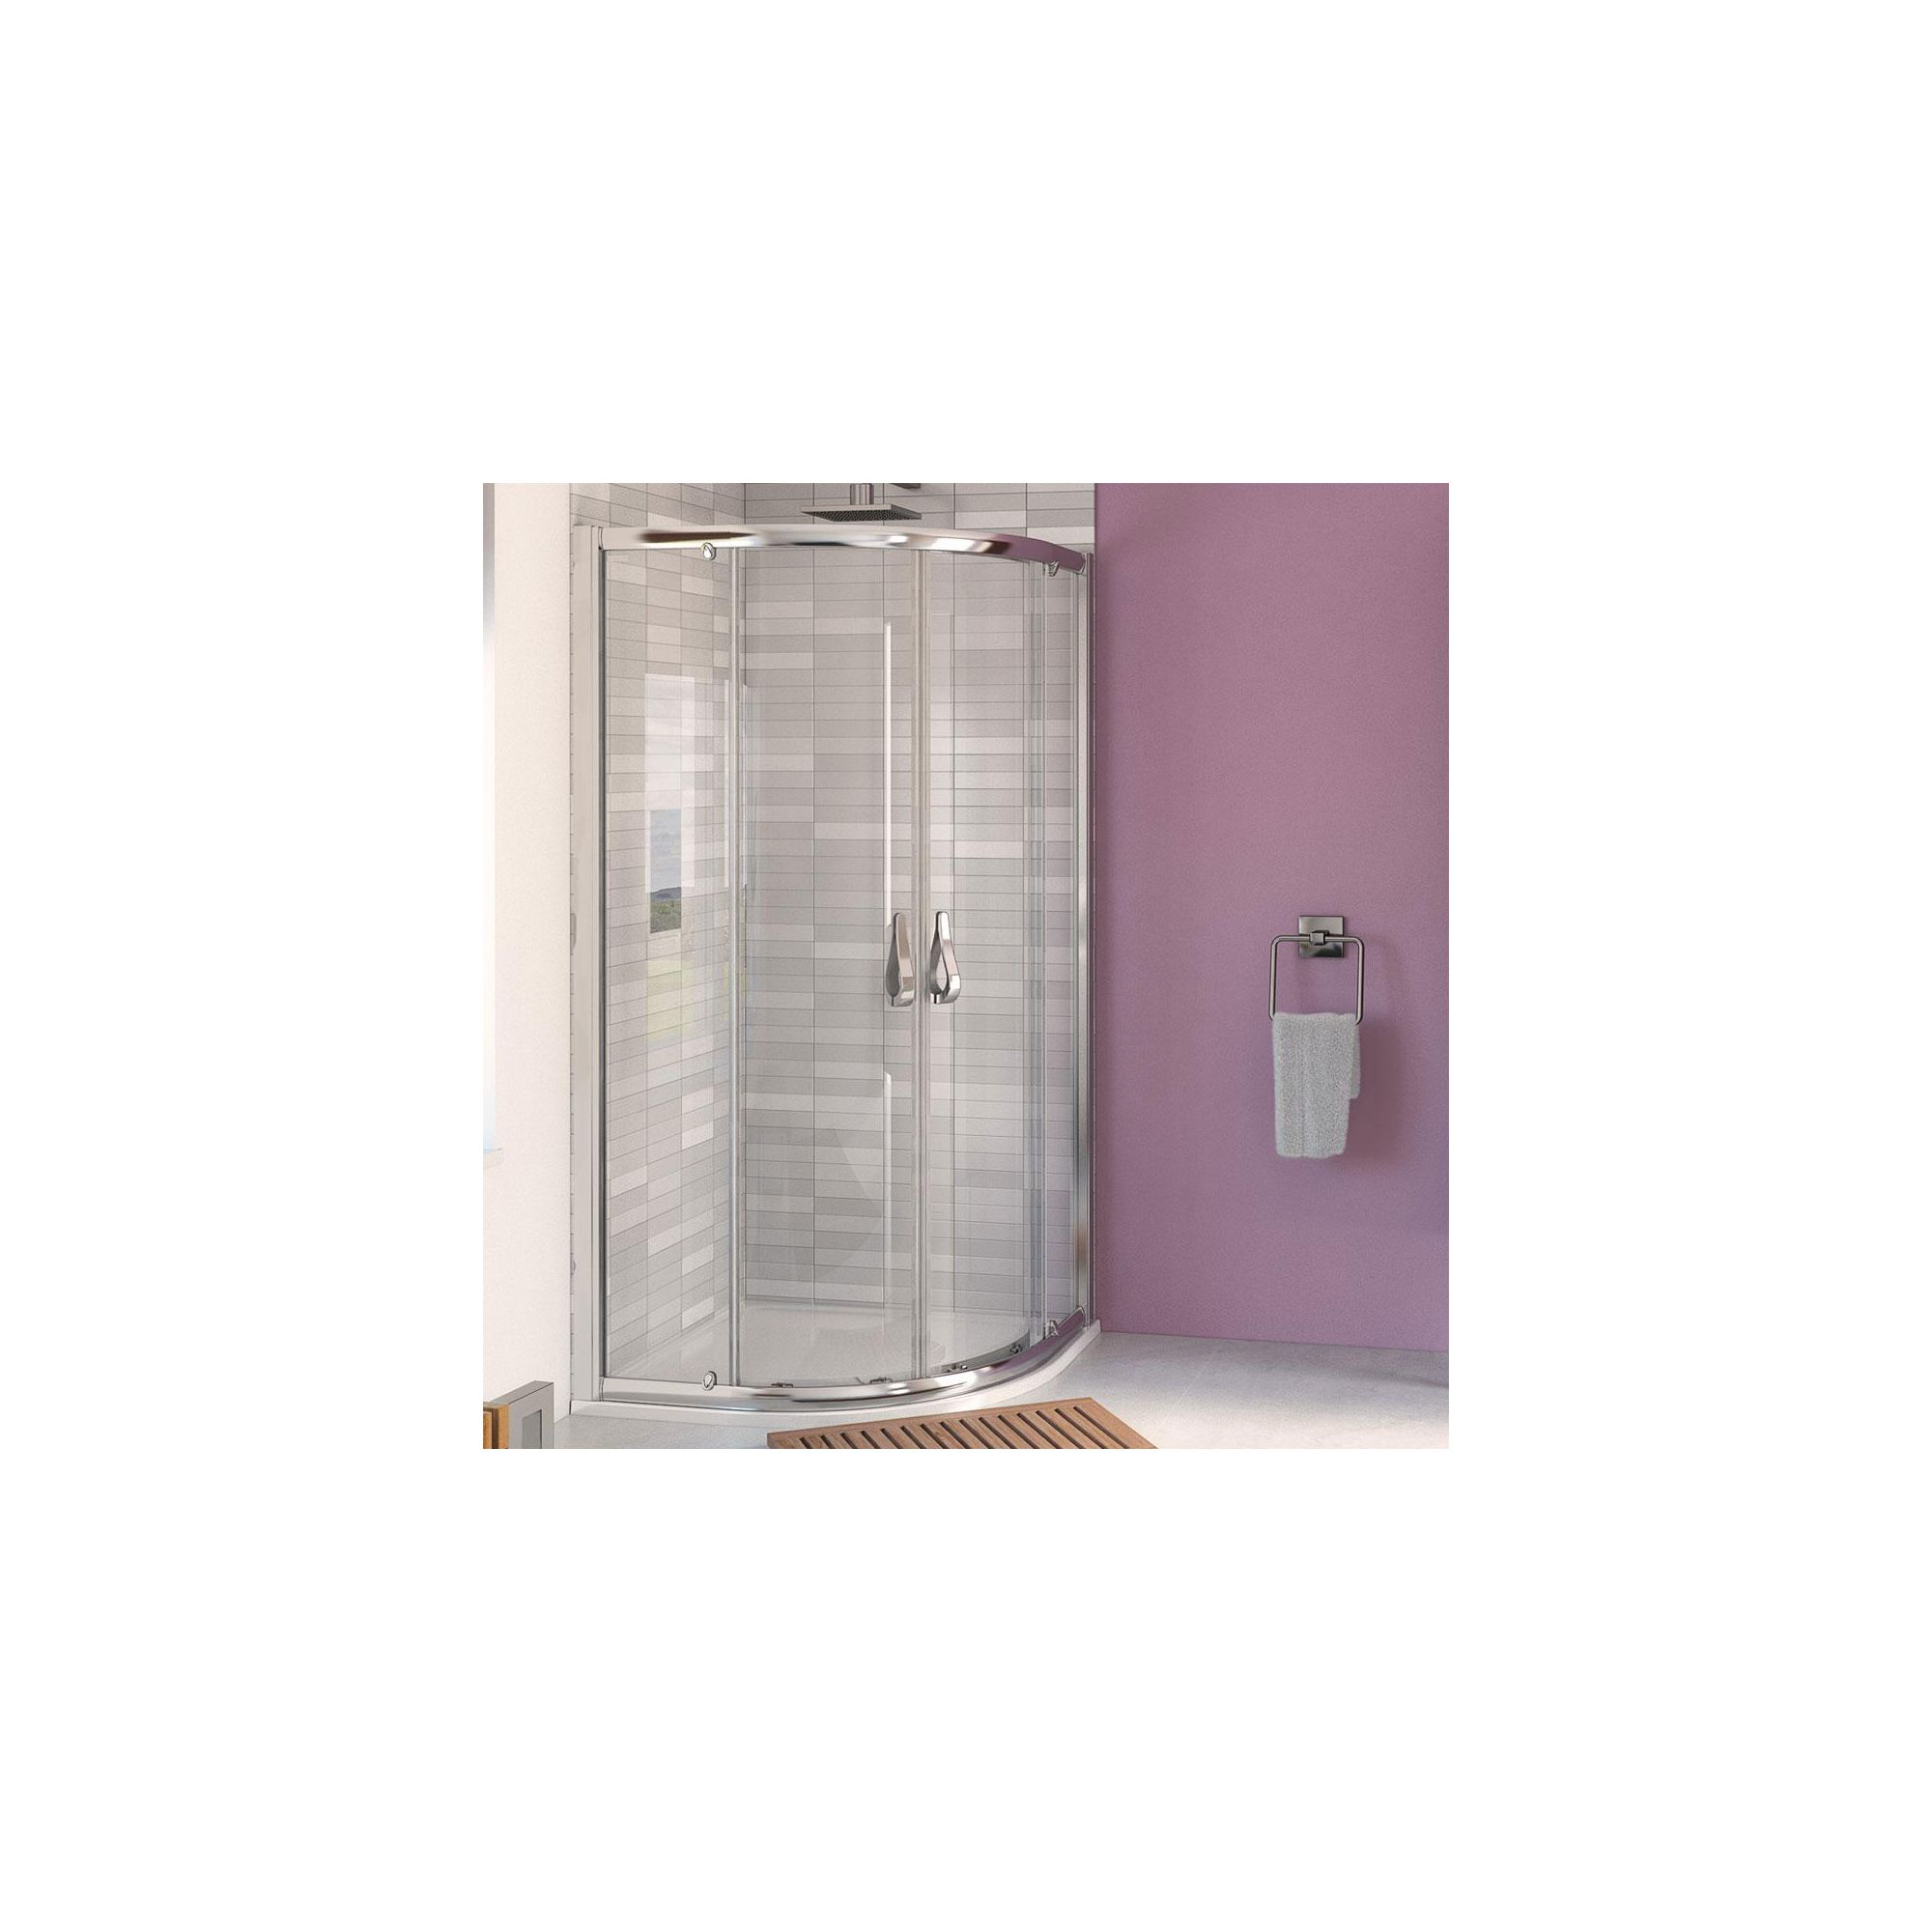 Aqualux AQUA6 Quadrant Shower Door, 800mm x 800mm, Polished Silver Frame, 6mm Glass at Tesco Direct